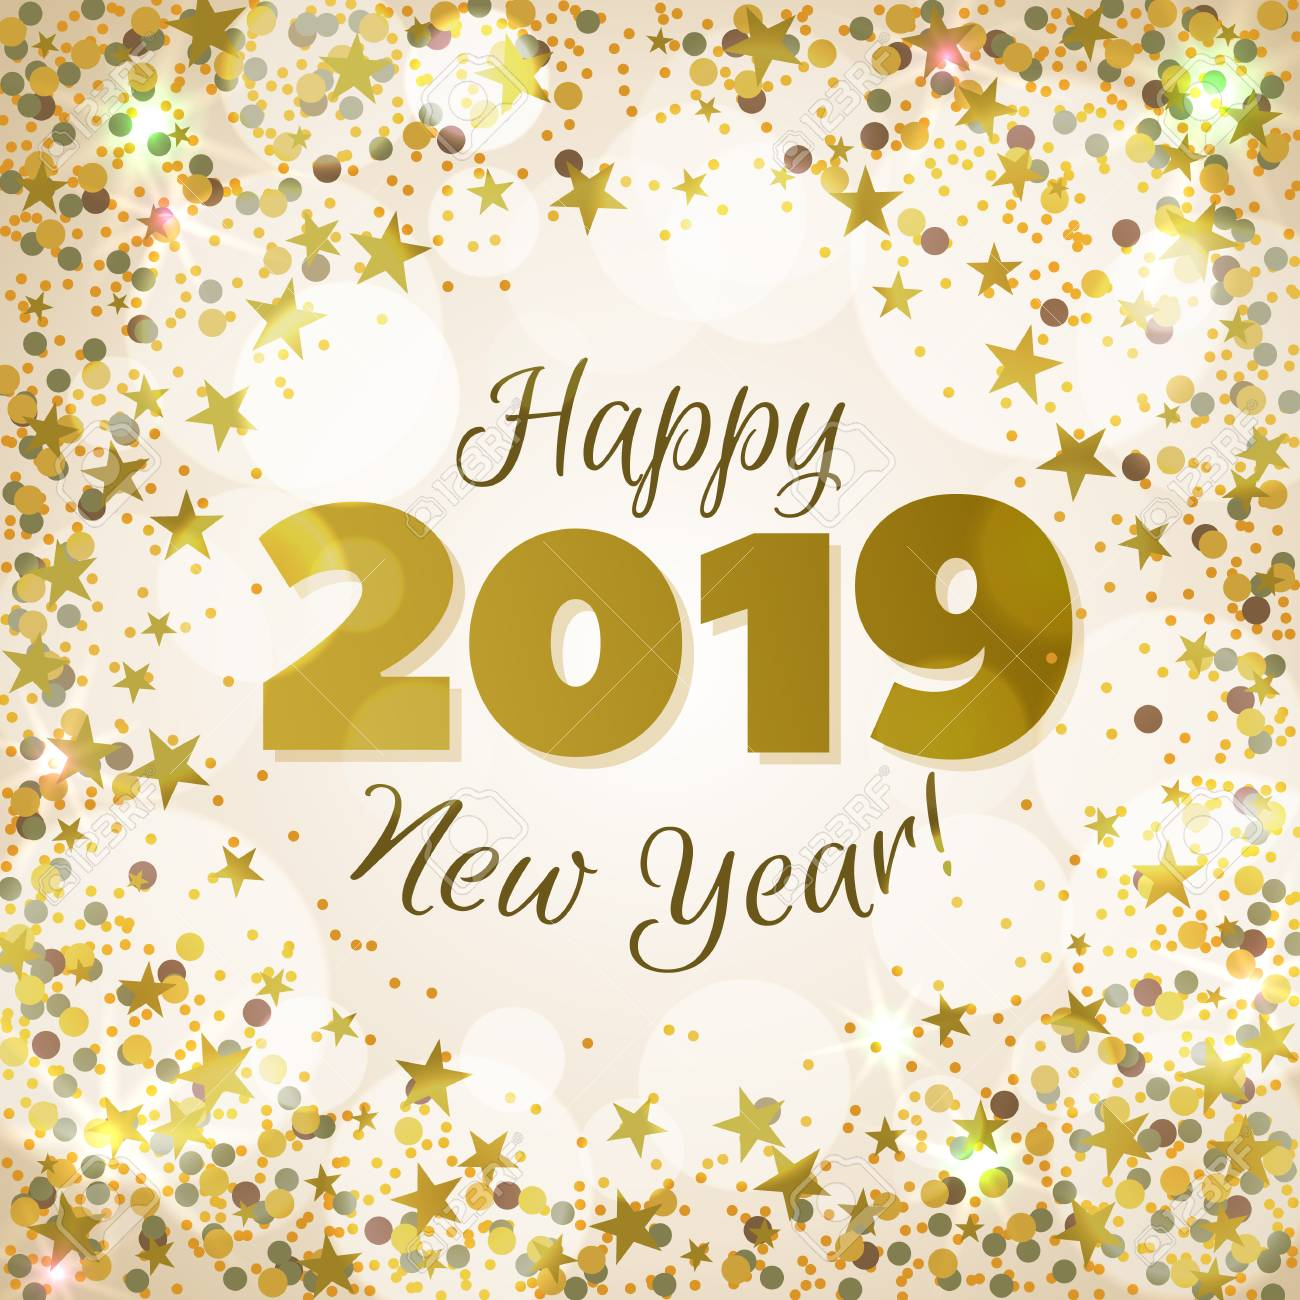 free images happy new year 2019